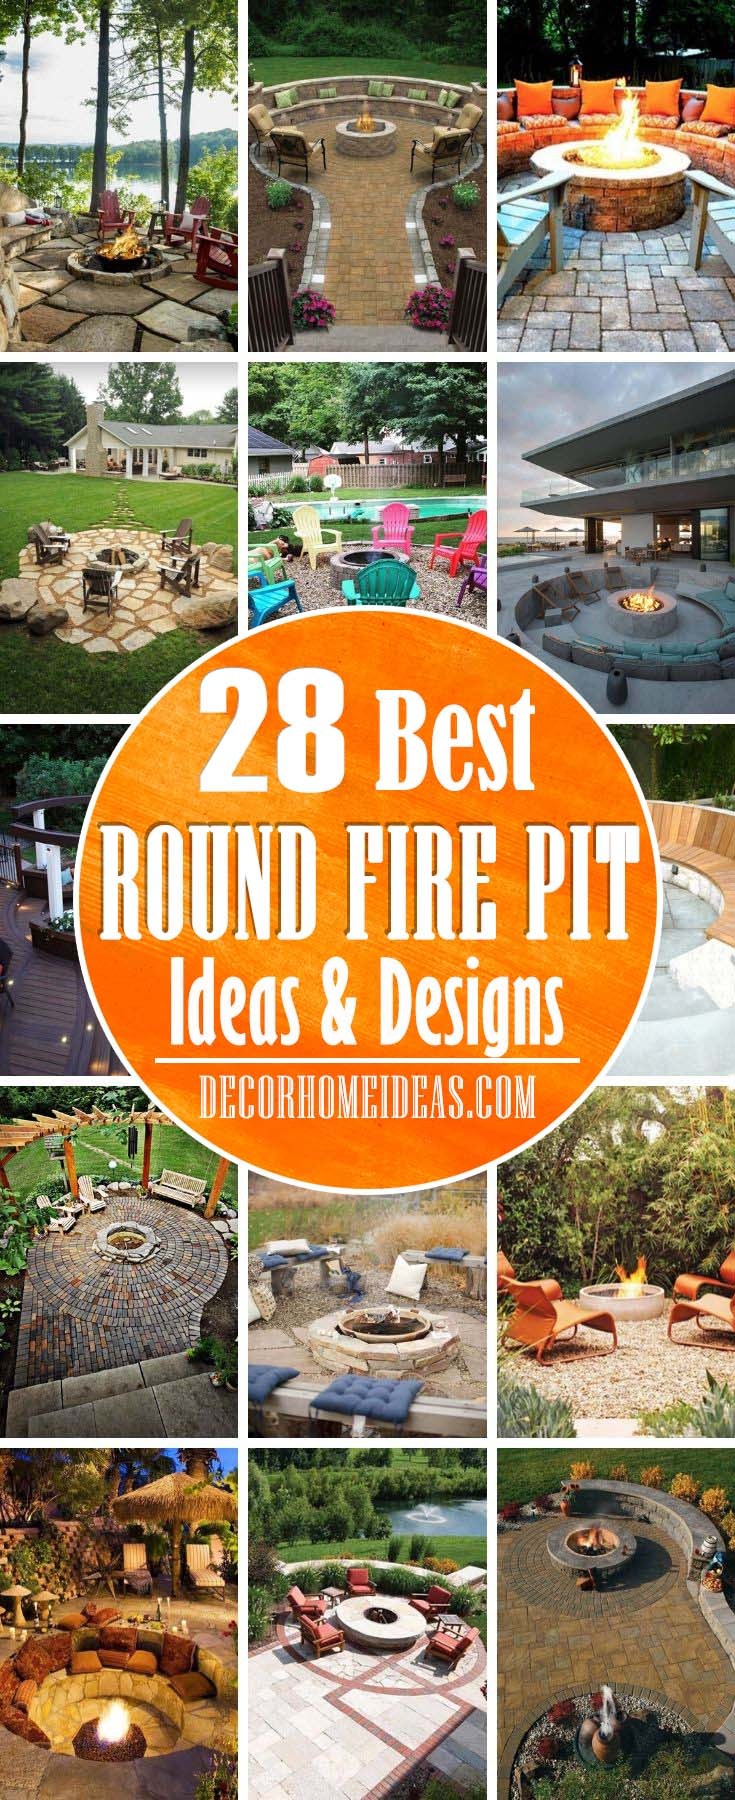 Best Round Fire Pit Ideas. Stone, rock, open brick and concrete pits, these dreamy backyard round fire pit ideas will help you get things lit this summer. #diy #firepit #round #decorhomeideas